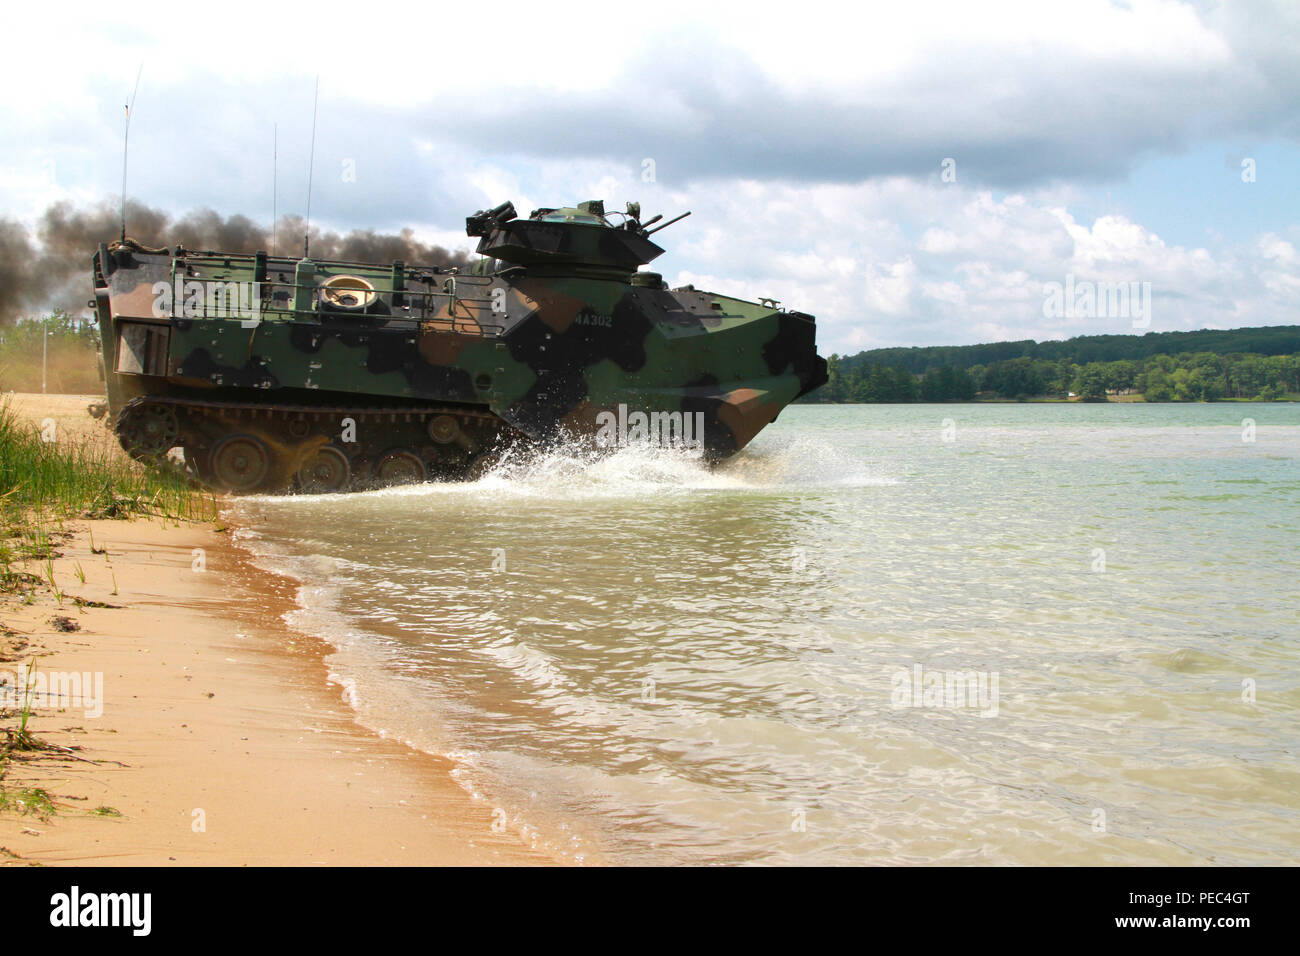 An Amphibious Assault Vehicle From Company A 4th Assault